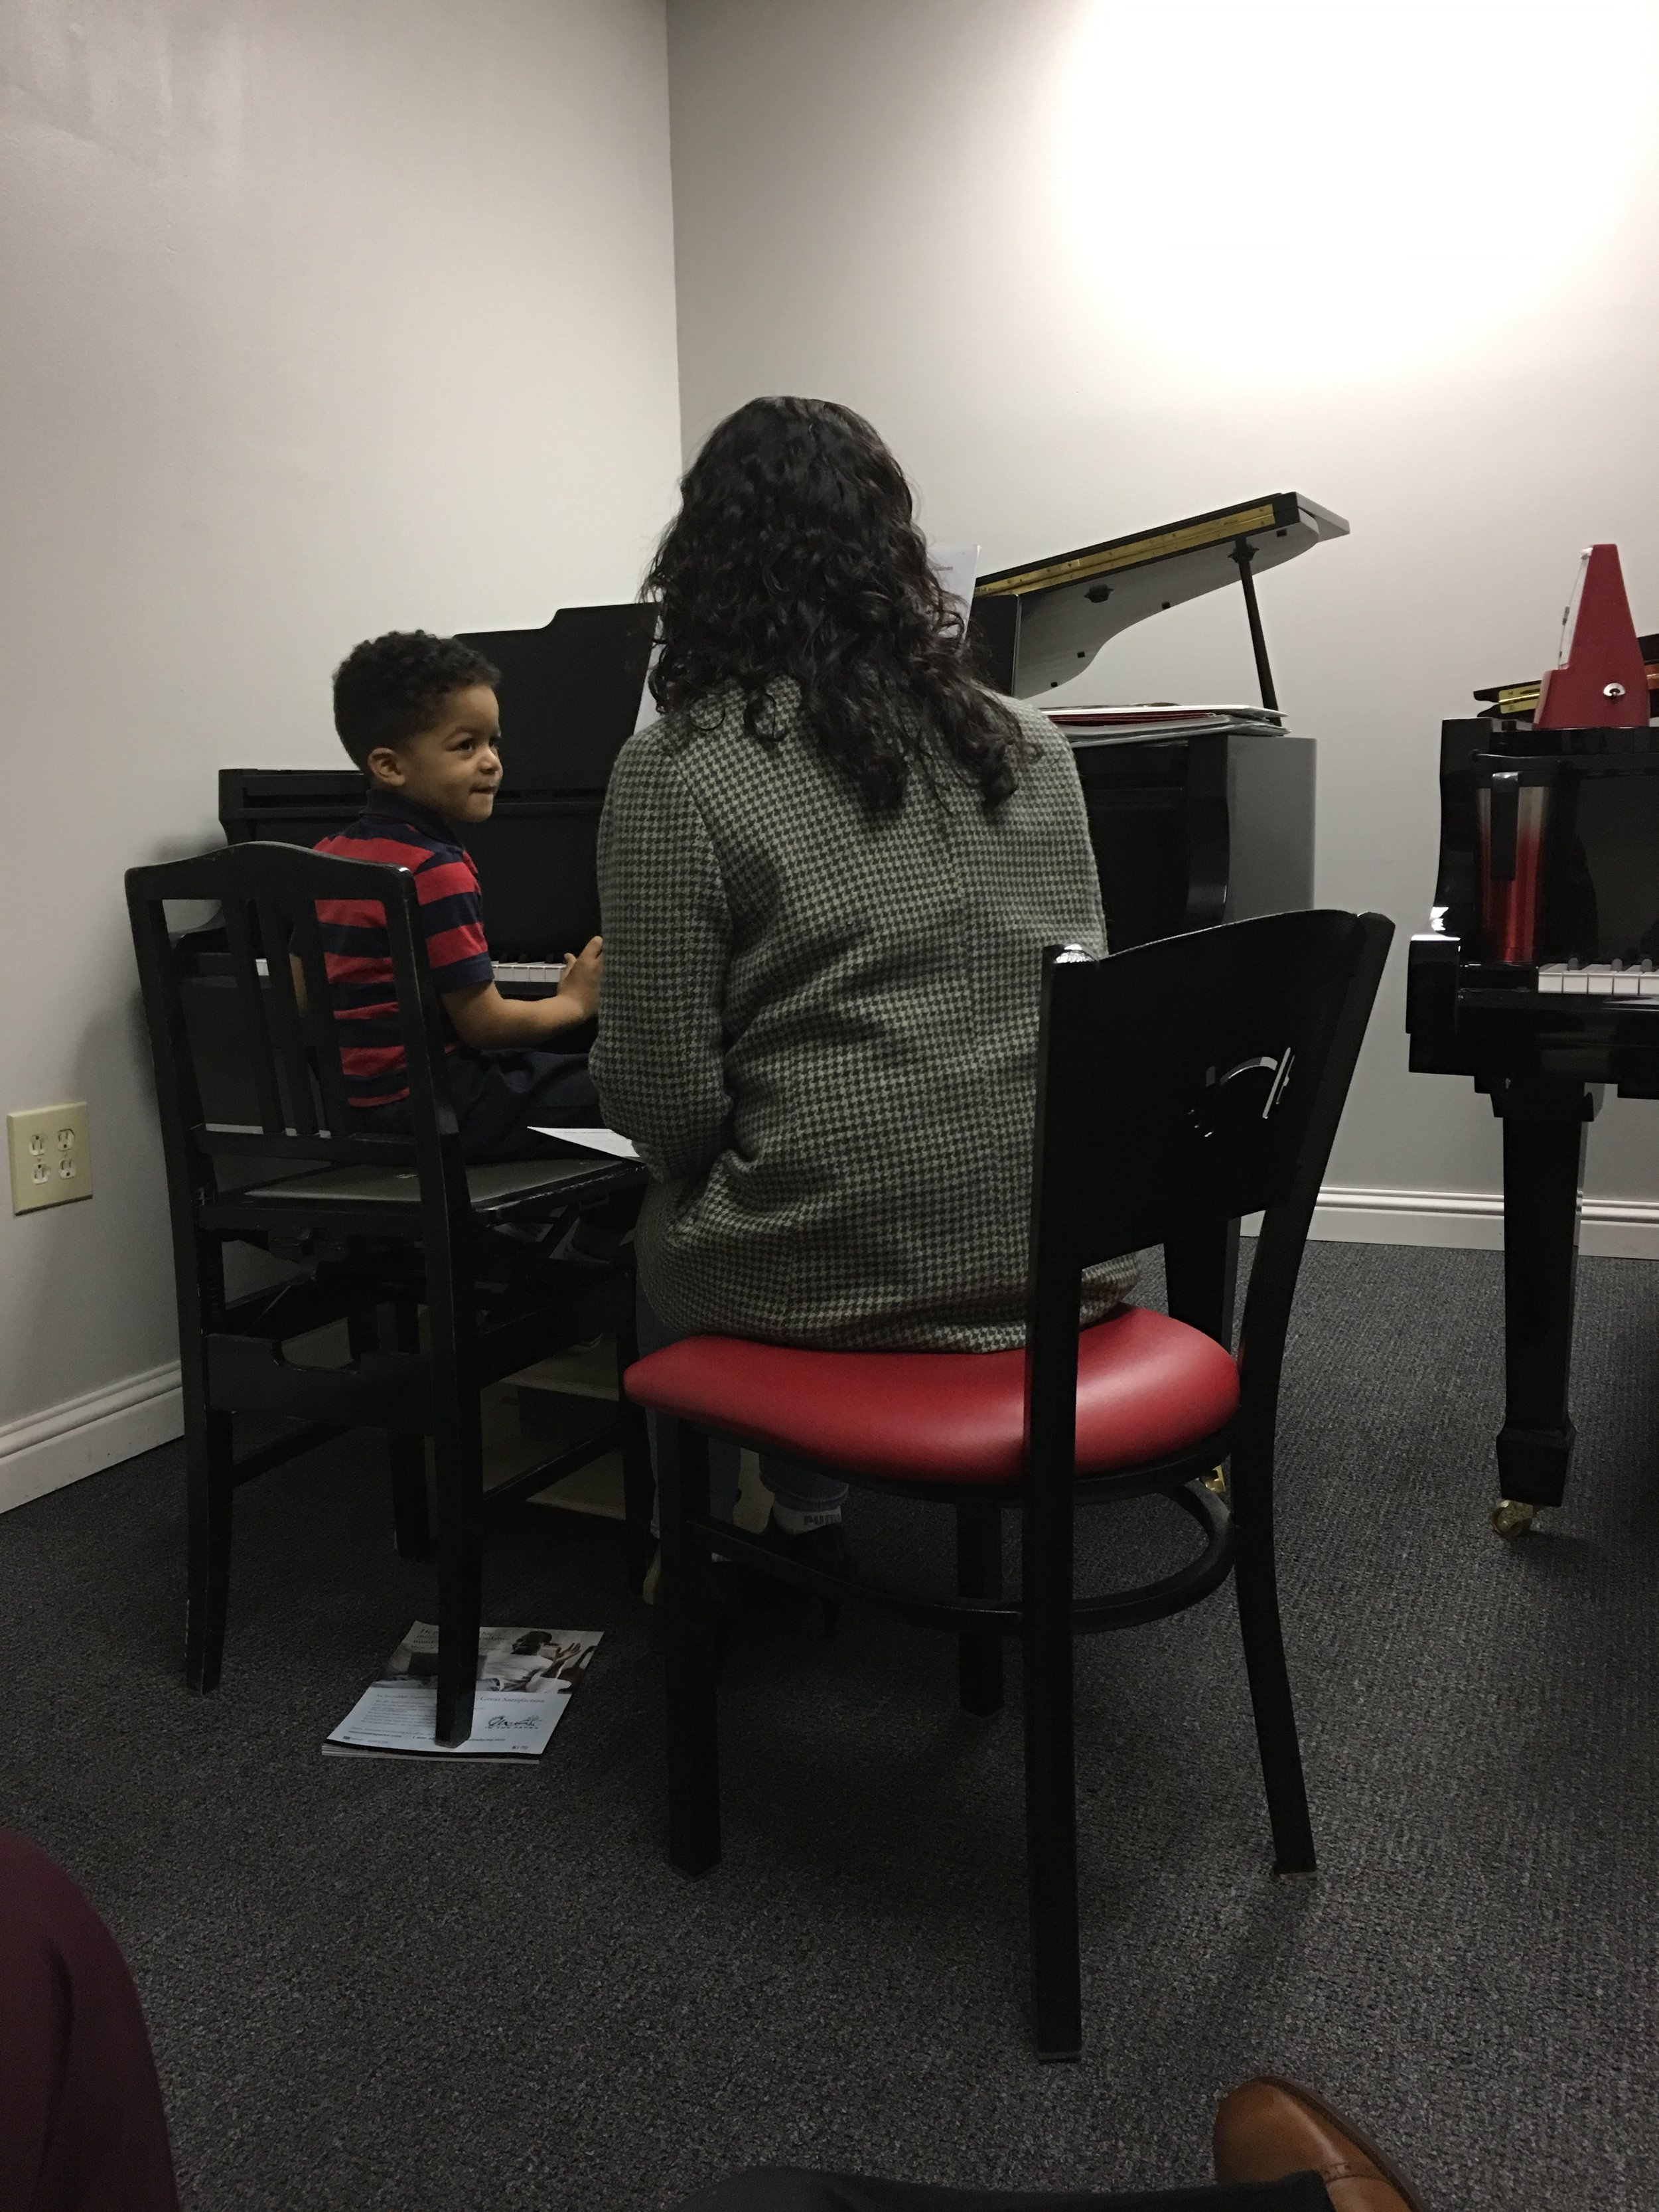 Day 1193: Elliott continues to pick up new activities, including piano lessons, as he nears the end of treatment